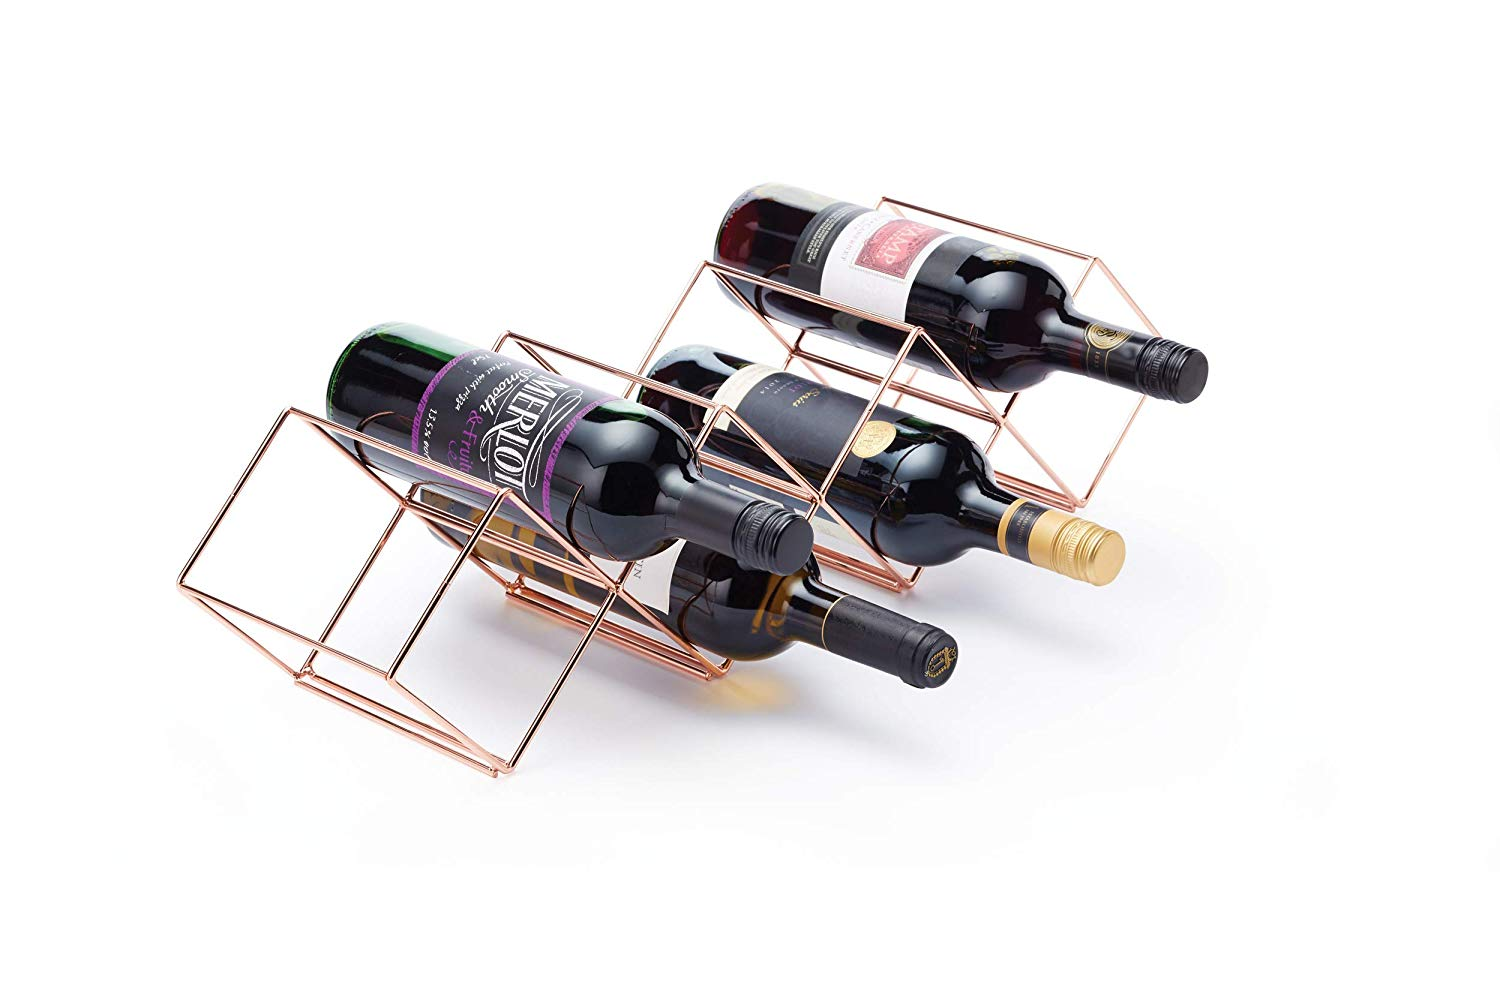 BarCraft Wire 7 Bottle Stackable Wine Rack, 58 x 14.5 x 14.5 cm